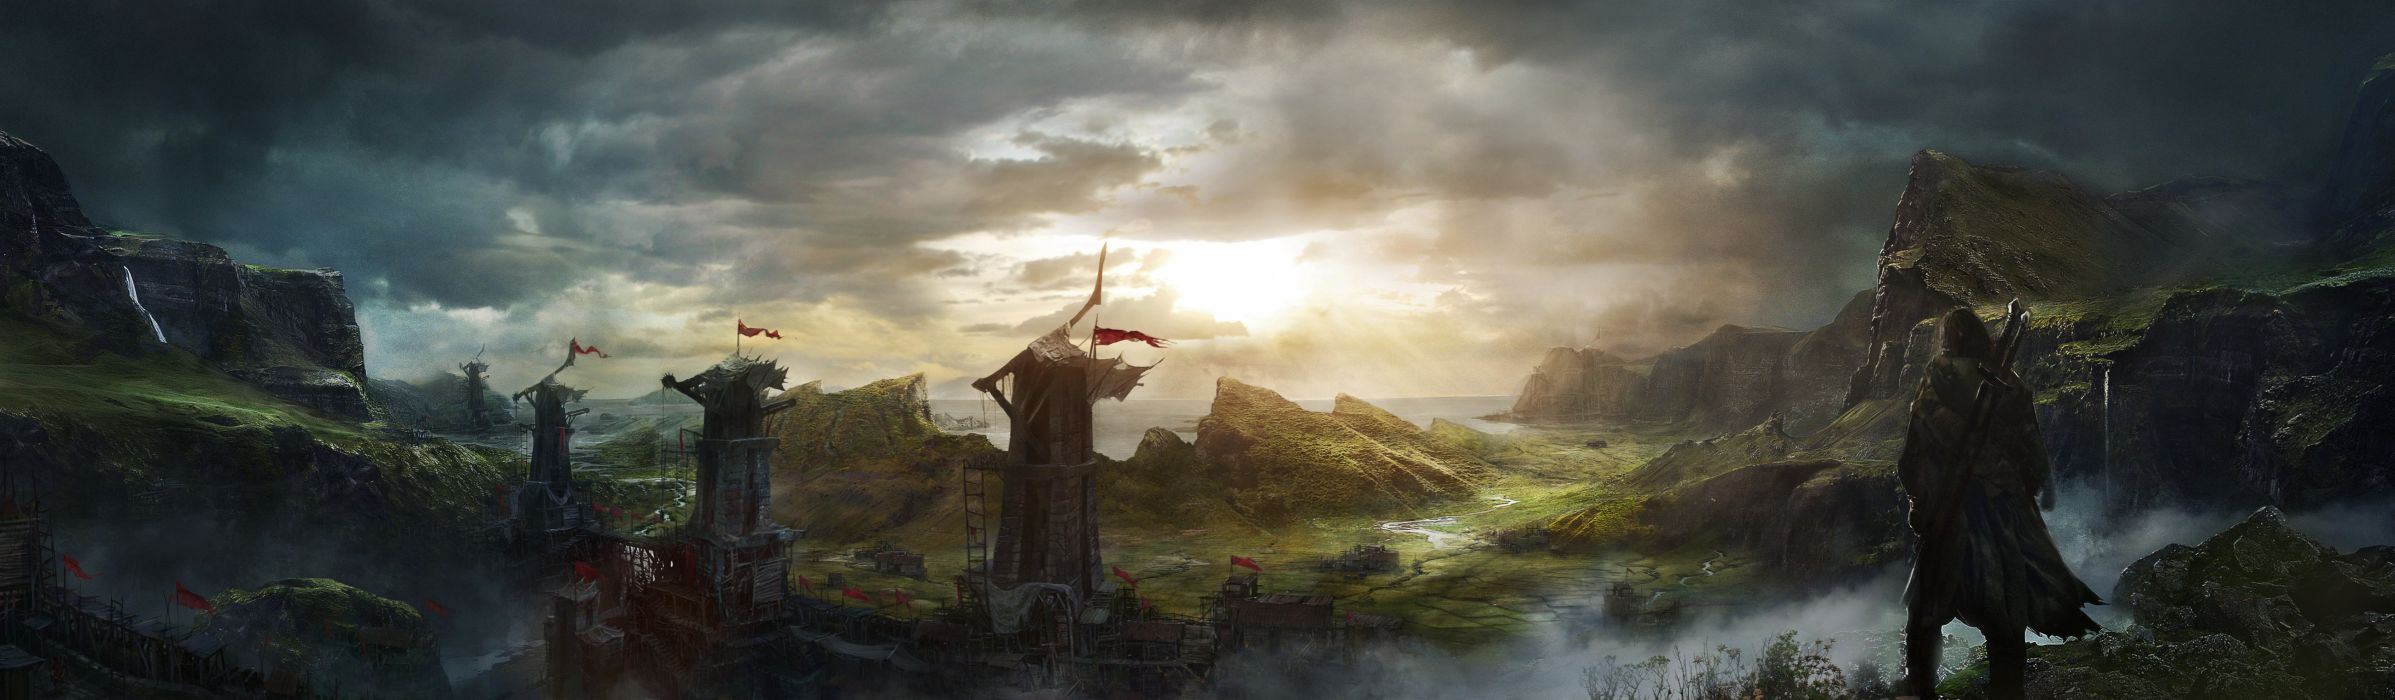 MIDDLE EARTH SHADOW MORDOR action adventure fantasy lotr lord rings warrior online (1) wallpaper